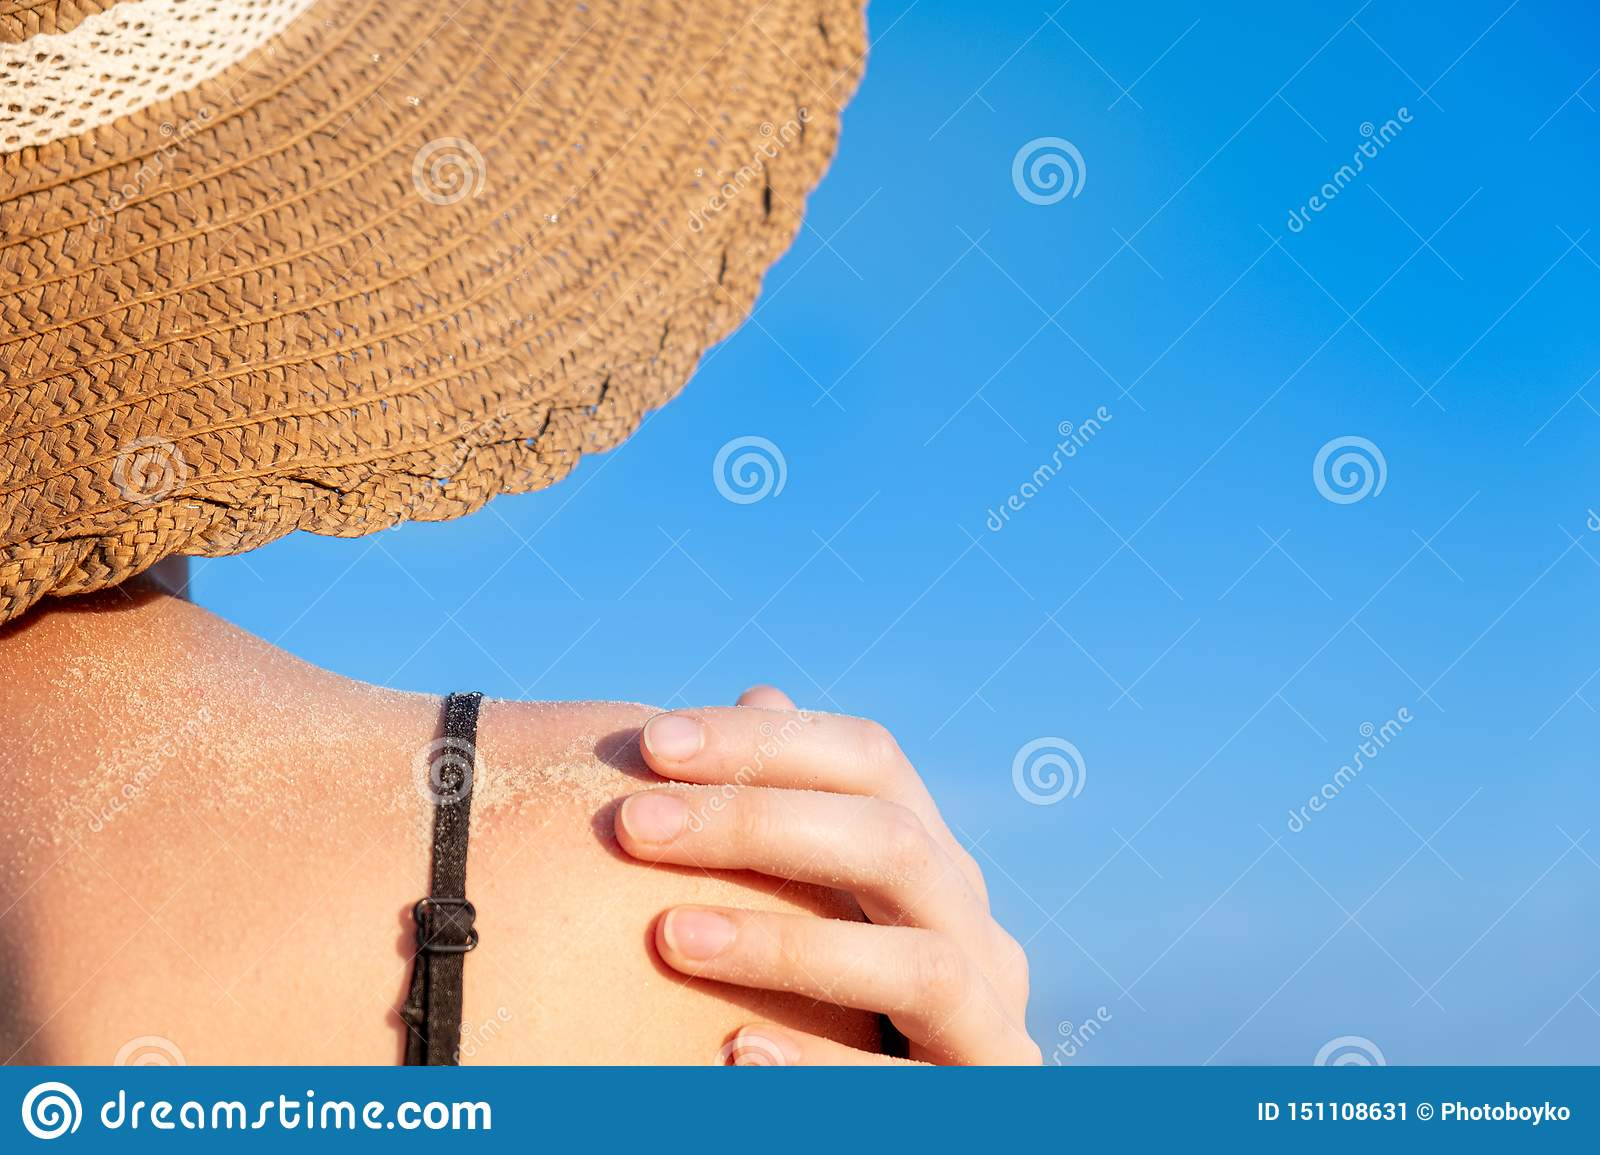 Summer holidays mood: female shoulder covered in sand in bright blue background.